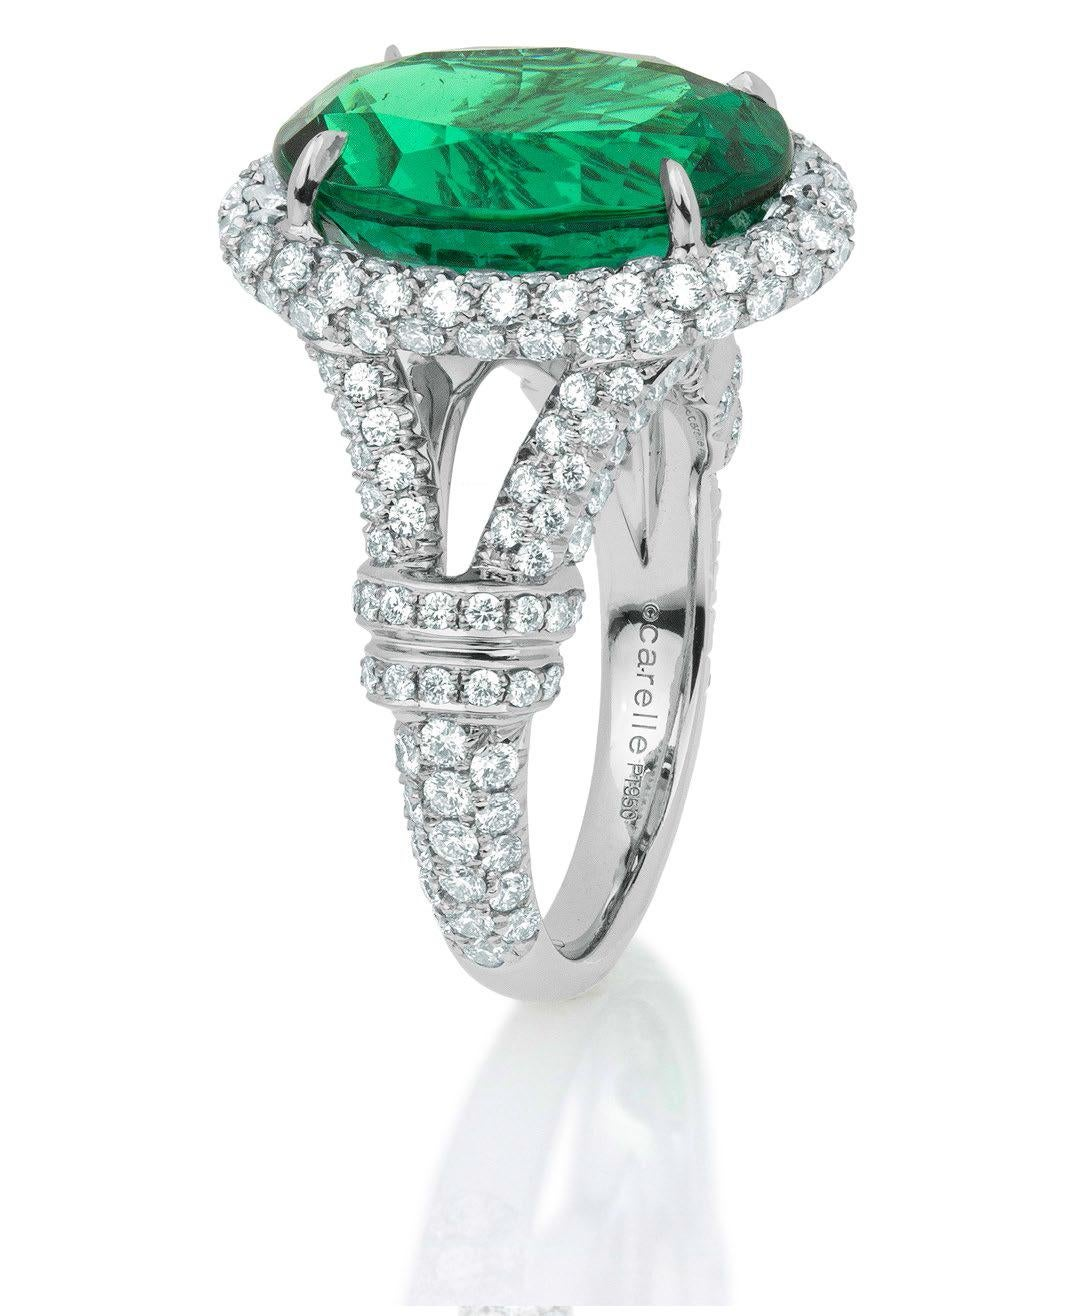 Carelle Releases Zambian Emerald Ring Elite Traveler